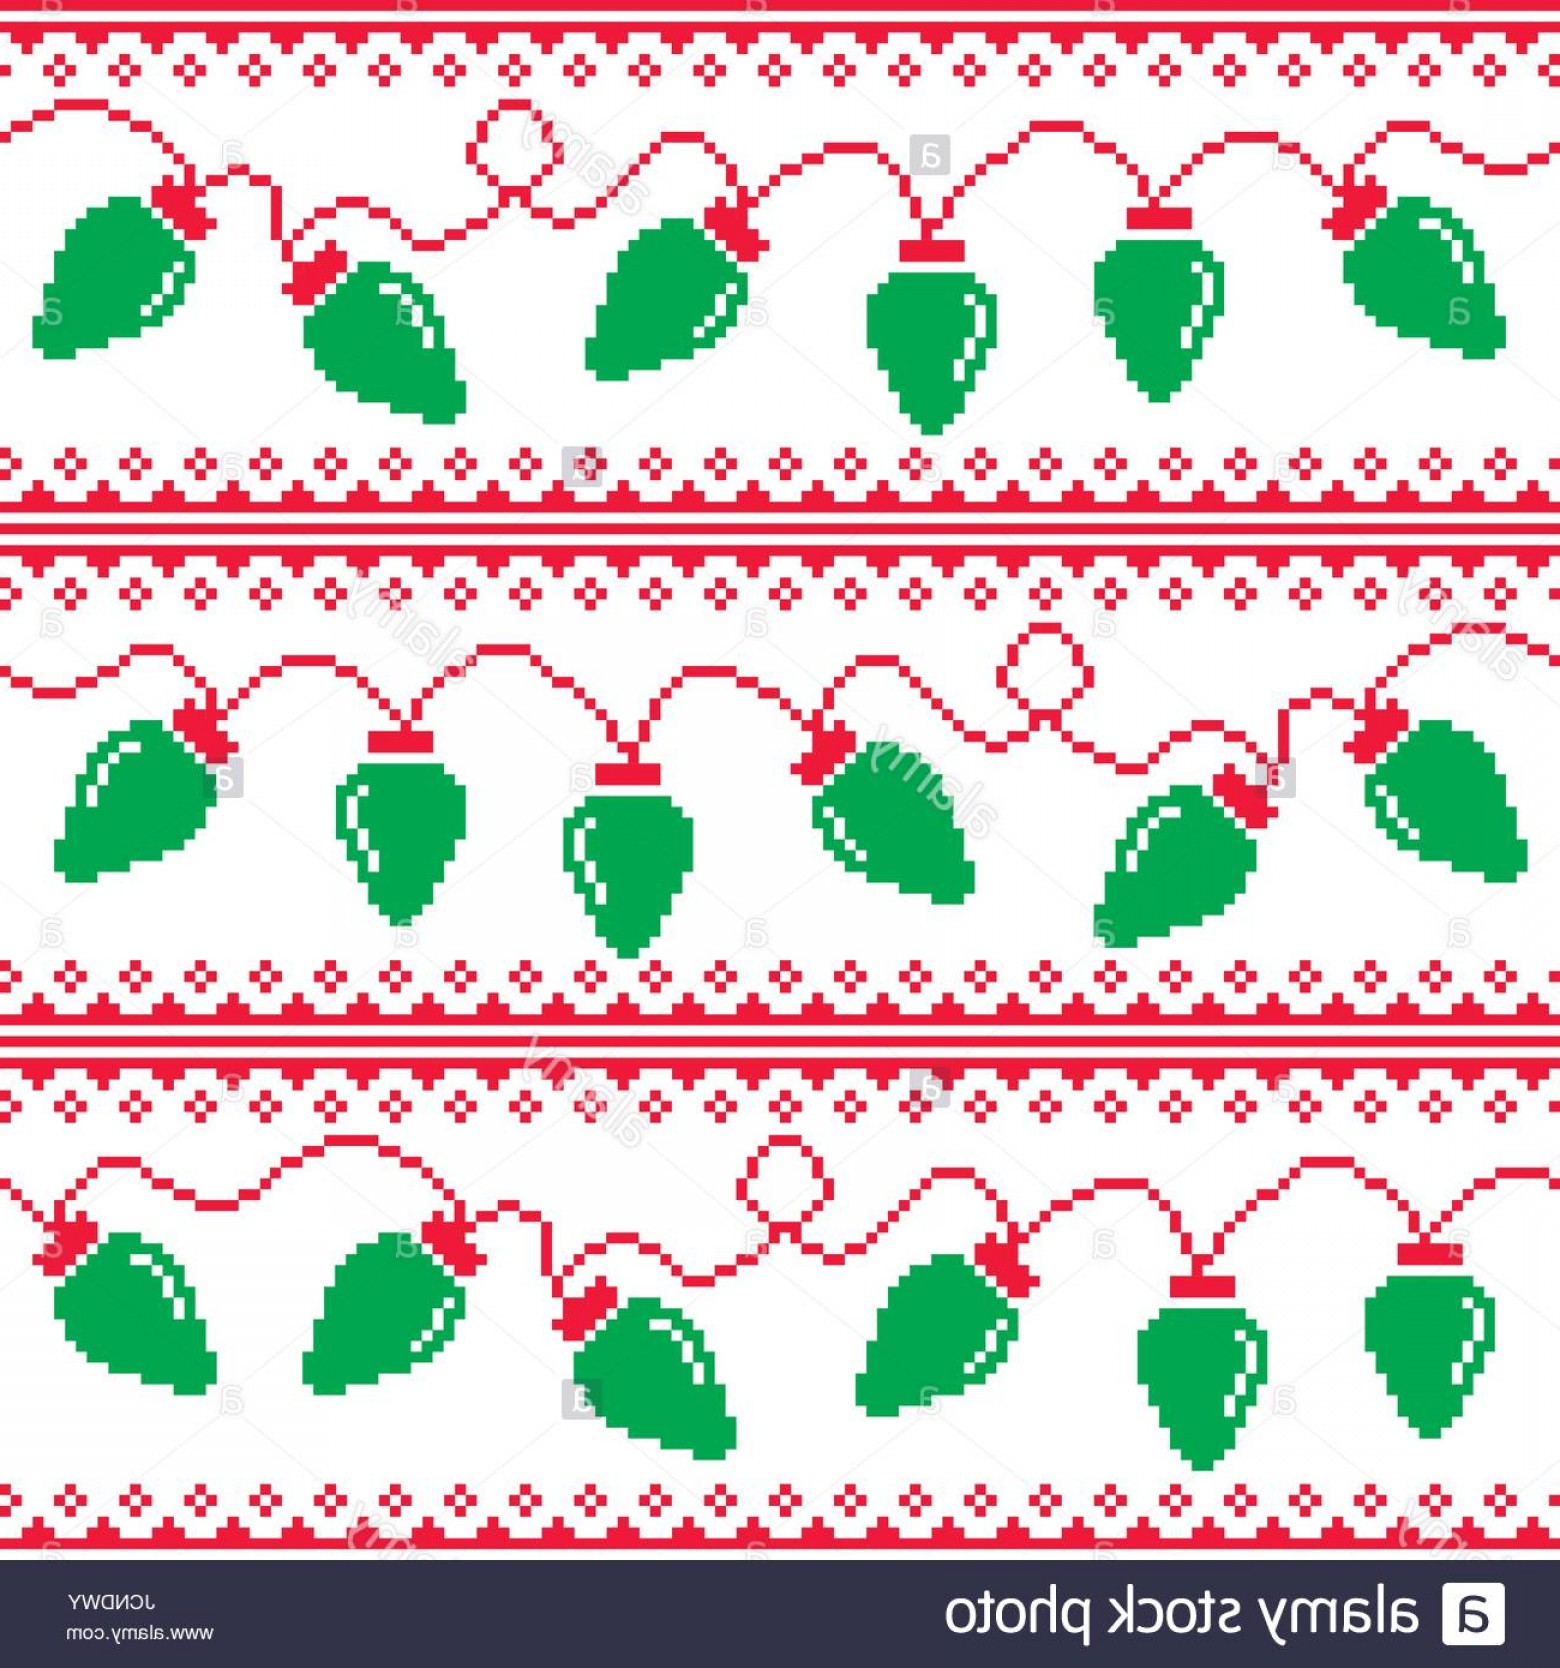 Christmas Sweater Design Vector: Stock Photo Christmas Tree Lights Seamless Pattern Ugly Christmas Sweater Style